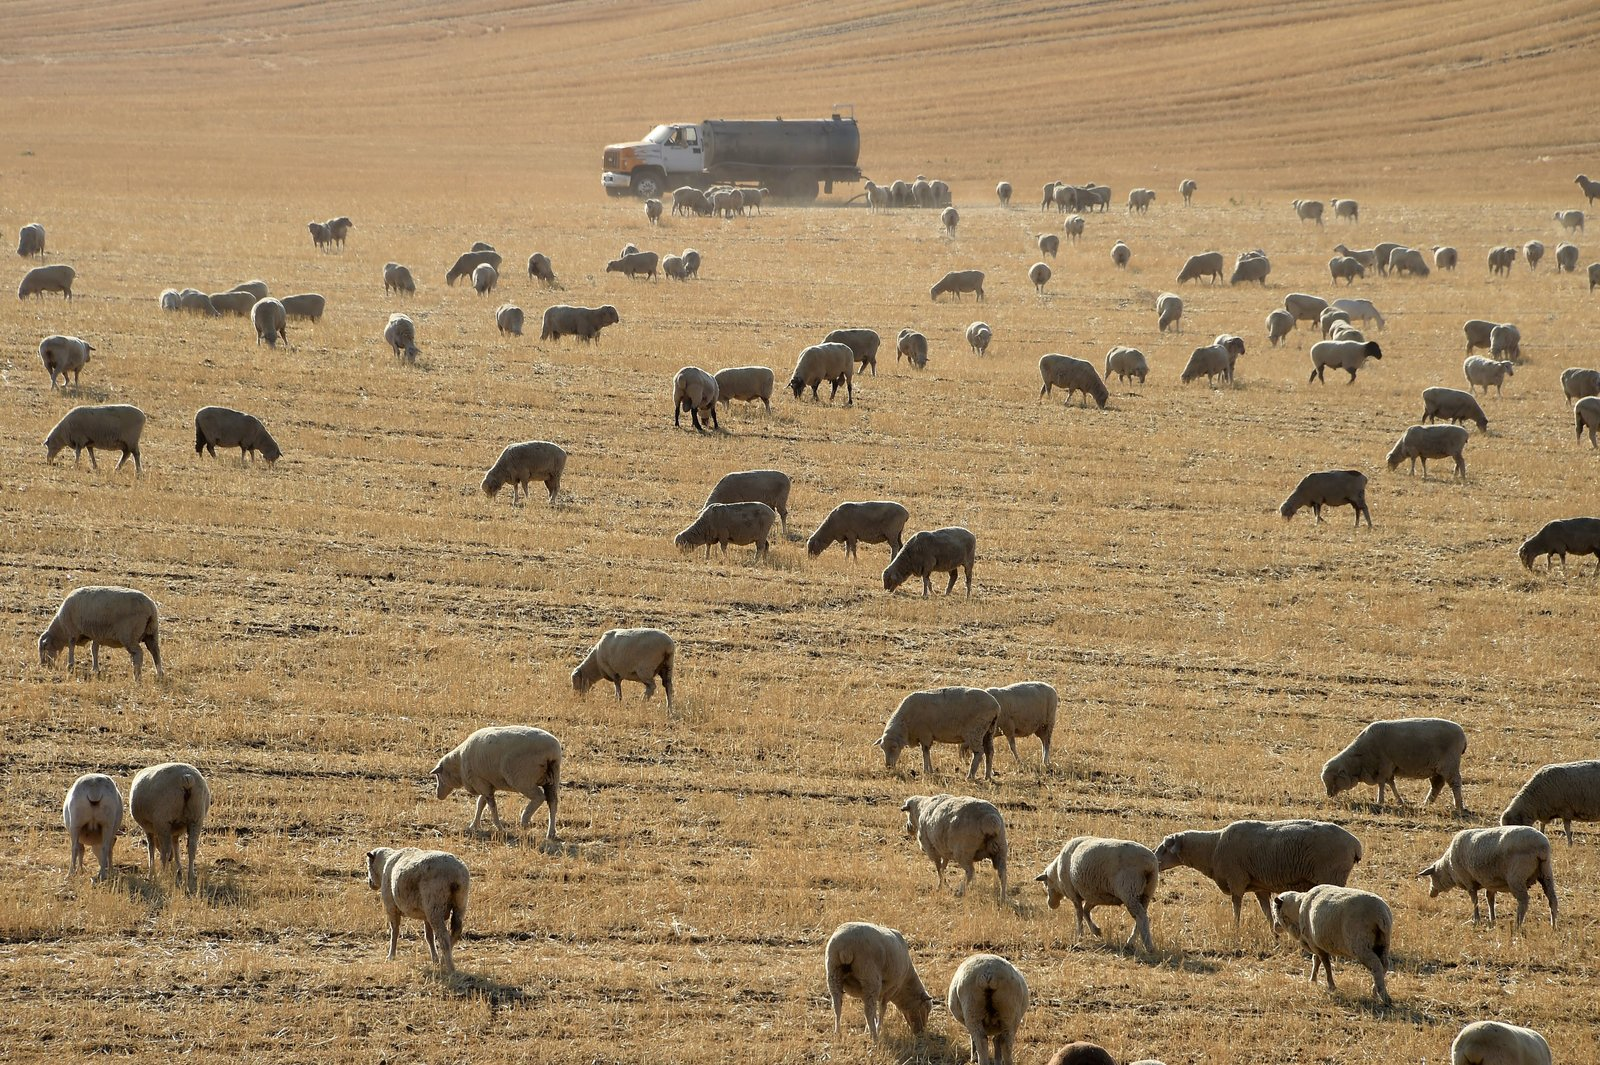 Sheep graze in a dry field near the town of McFarland in California's Central Valley, August 24, 2016. The Central Valley is the state's agriculture hub producing vast quantities of fruits, vegetables, nuts as well as dairy, beef and lamb but struggled through five years of the last drought. Credit: ROBYN BECK/AFP/Getty Images